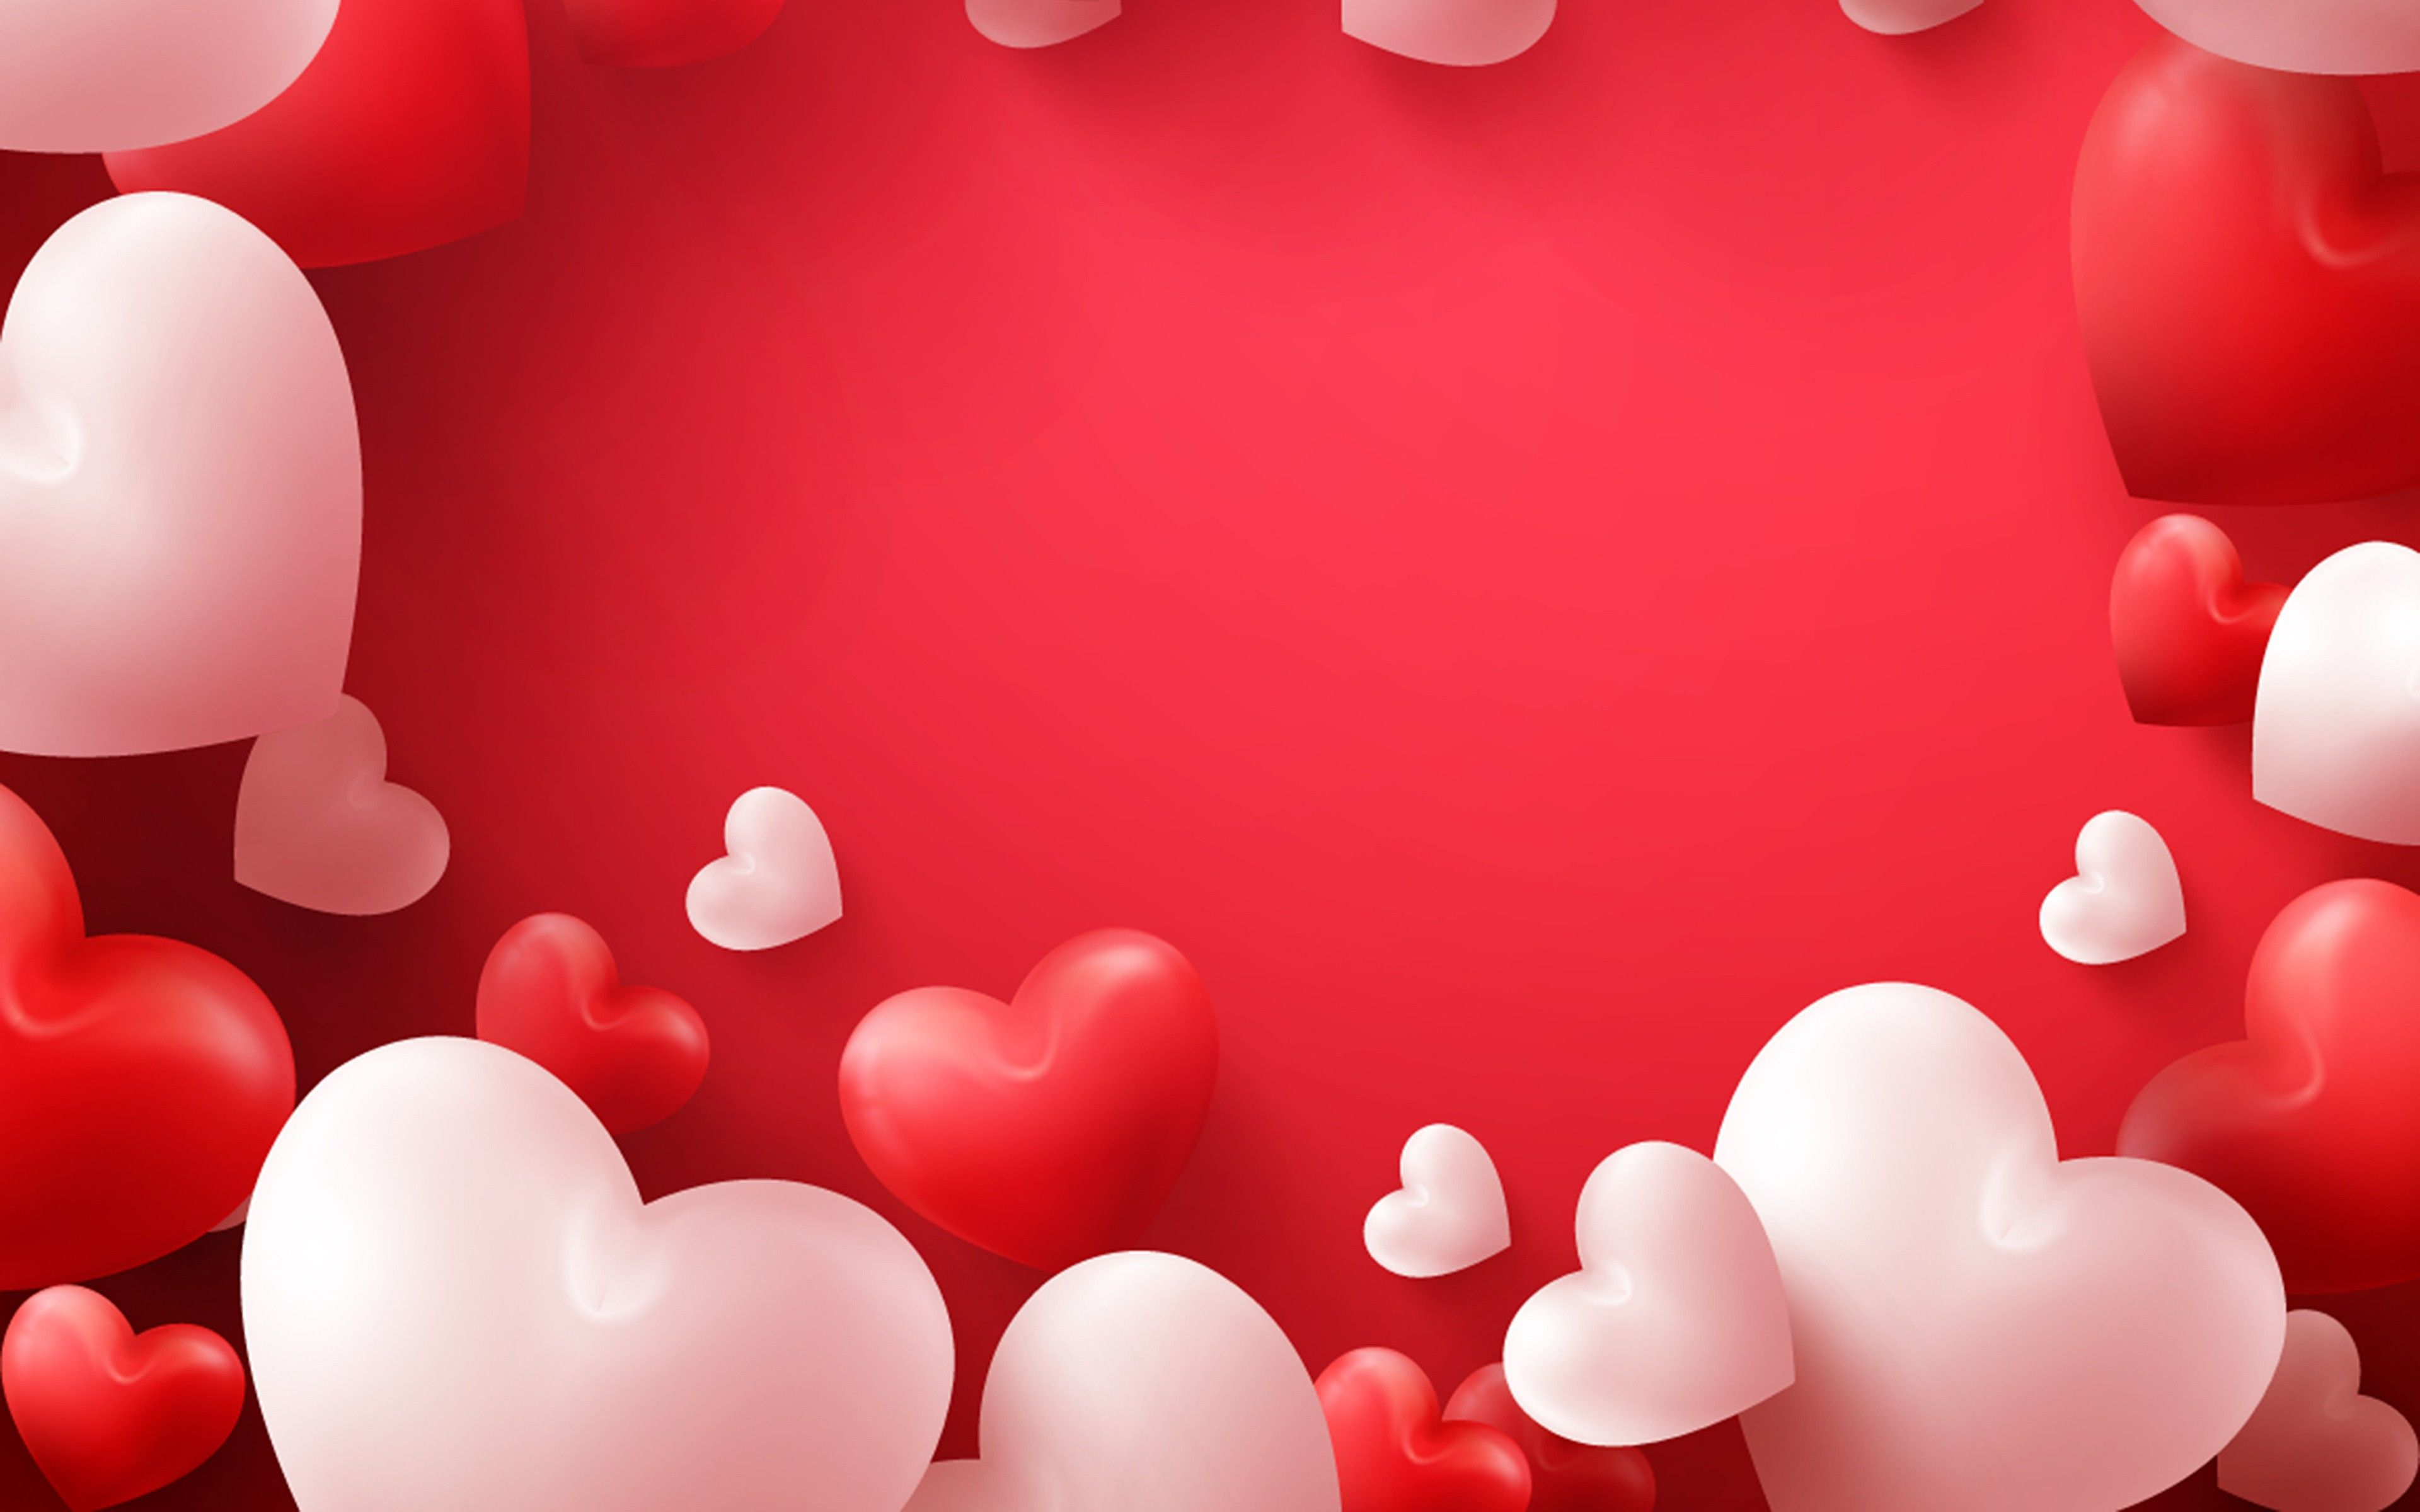 Pin By Richmondmom On Valentine S Day Valentines Day Background